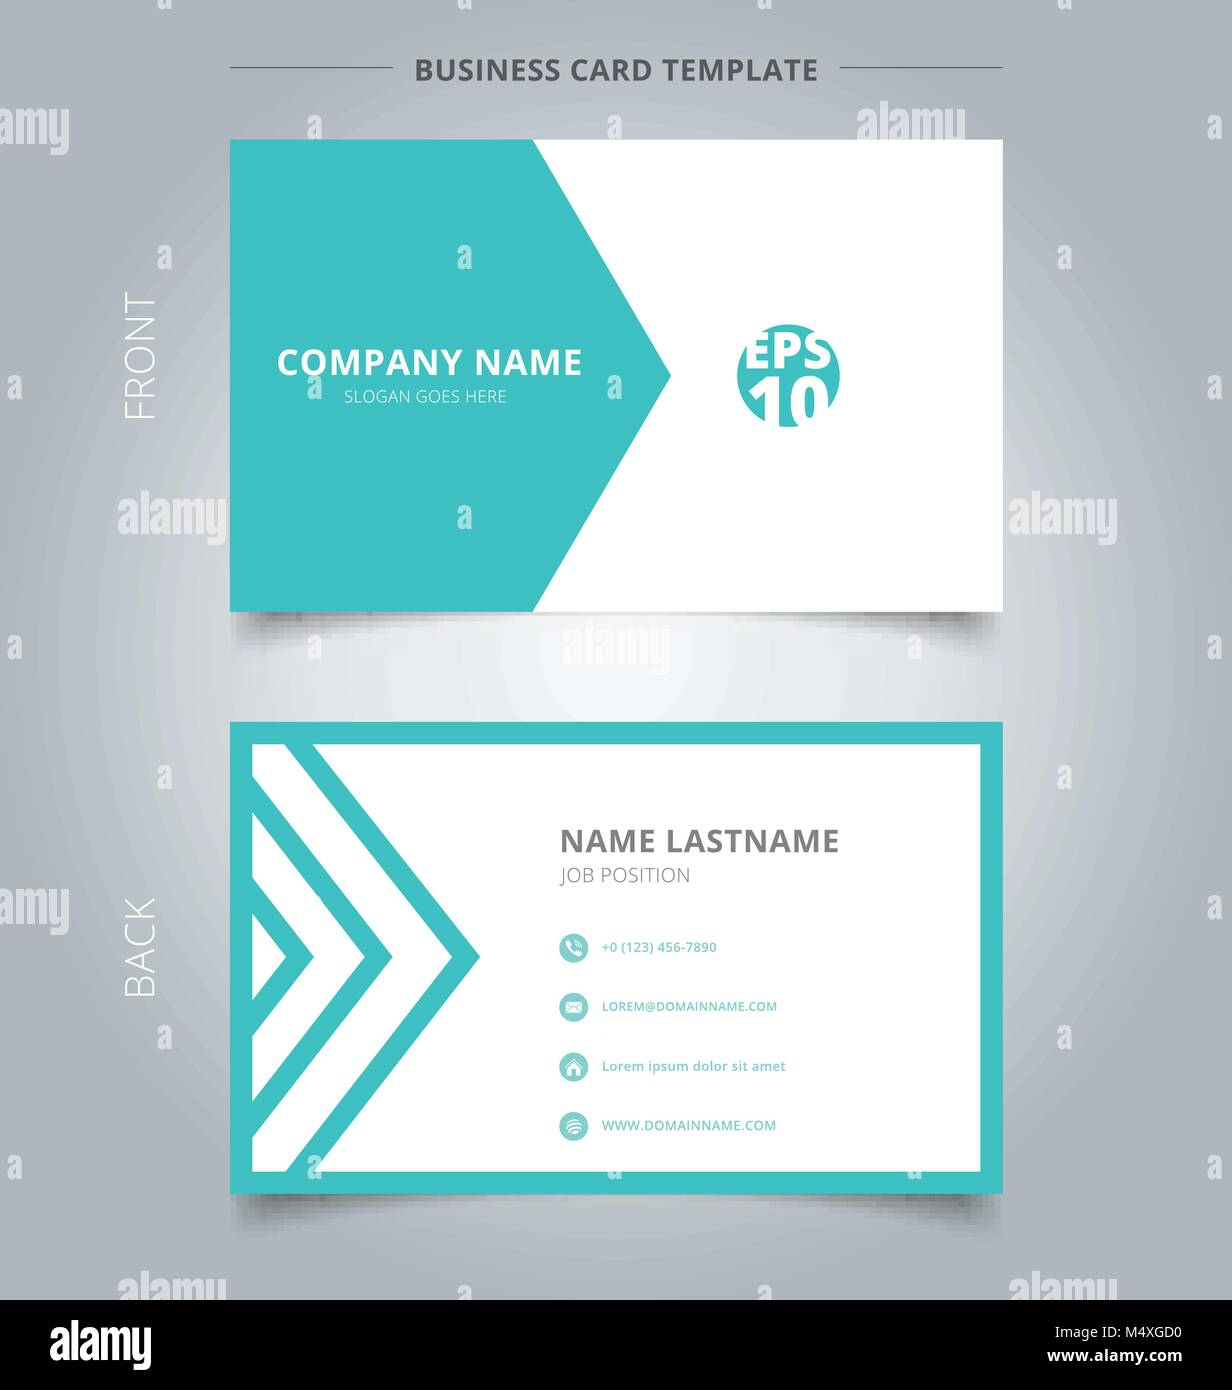 Creative business card and name card template green and white stock creative business card and name card template green and white triangle pattern abstract concept and commercial design vector graphic illustration reheart Images